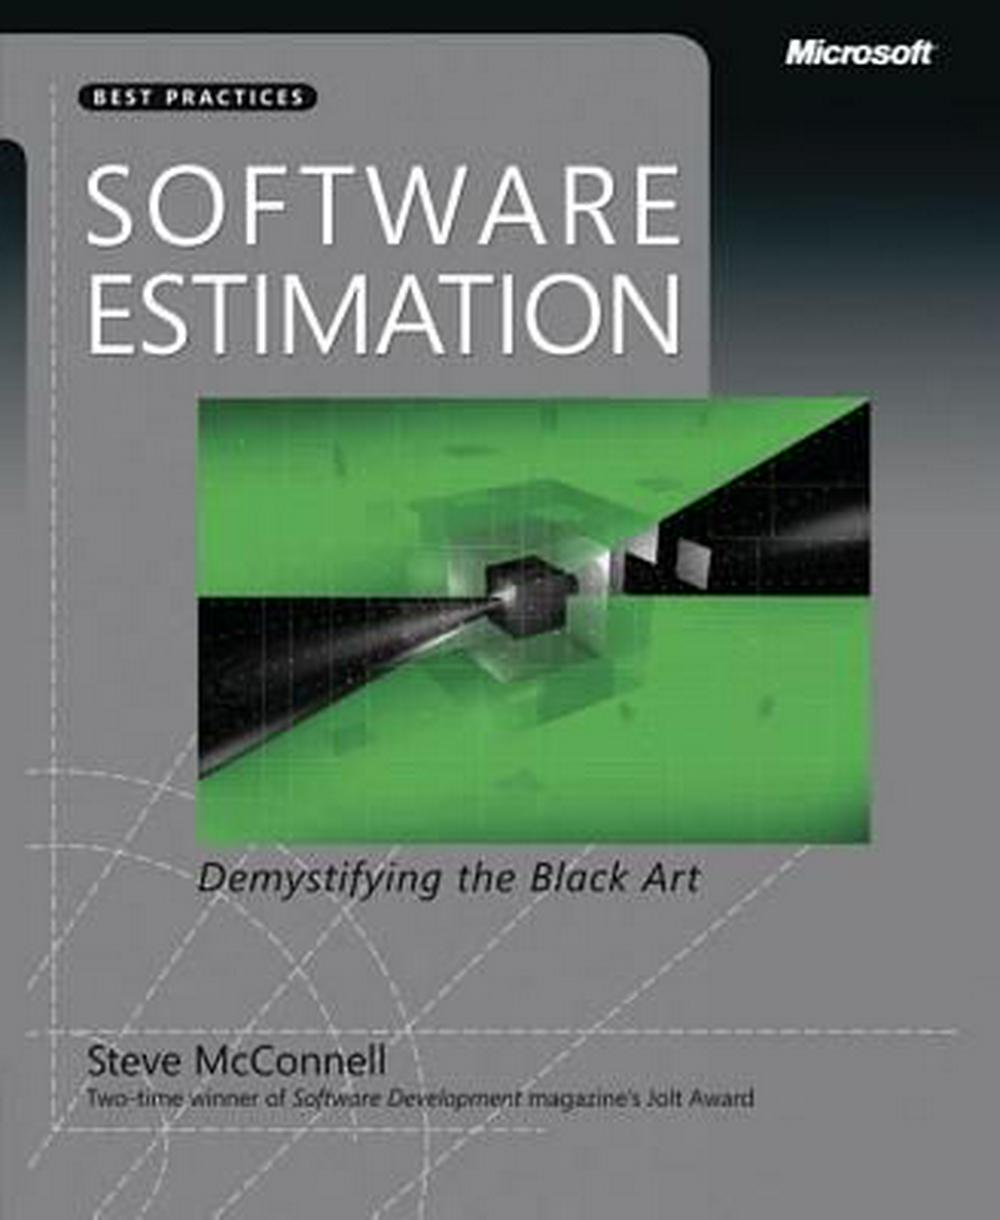 Software Estimation: Demystifying the Black Art by Steven C. McConnell, ISBN: 9780735605350